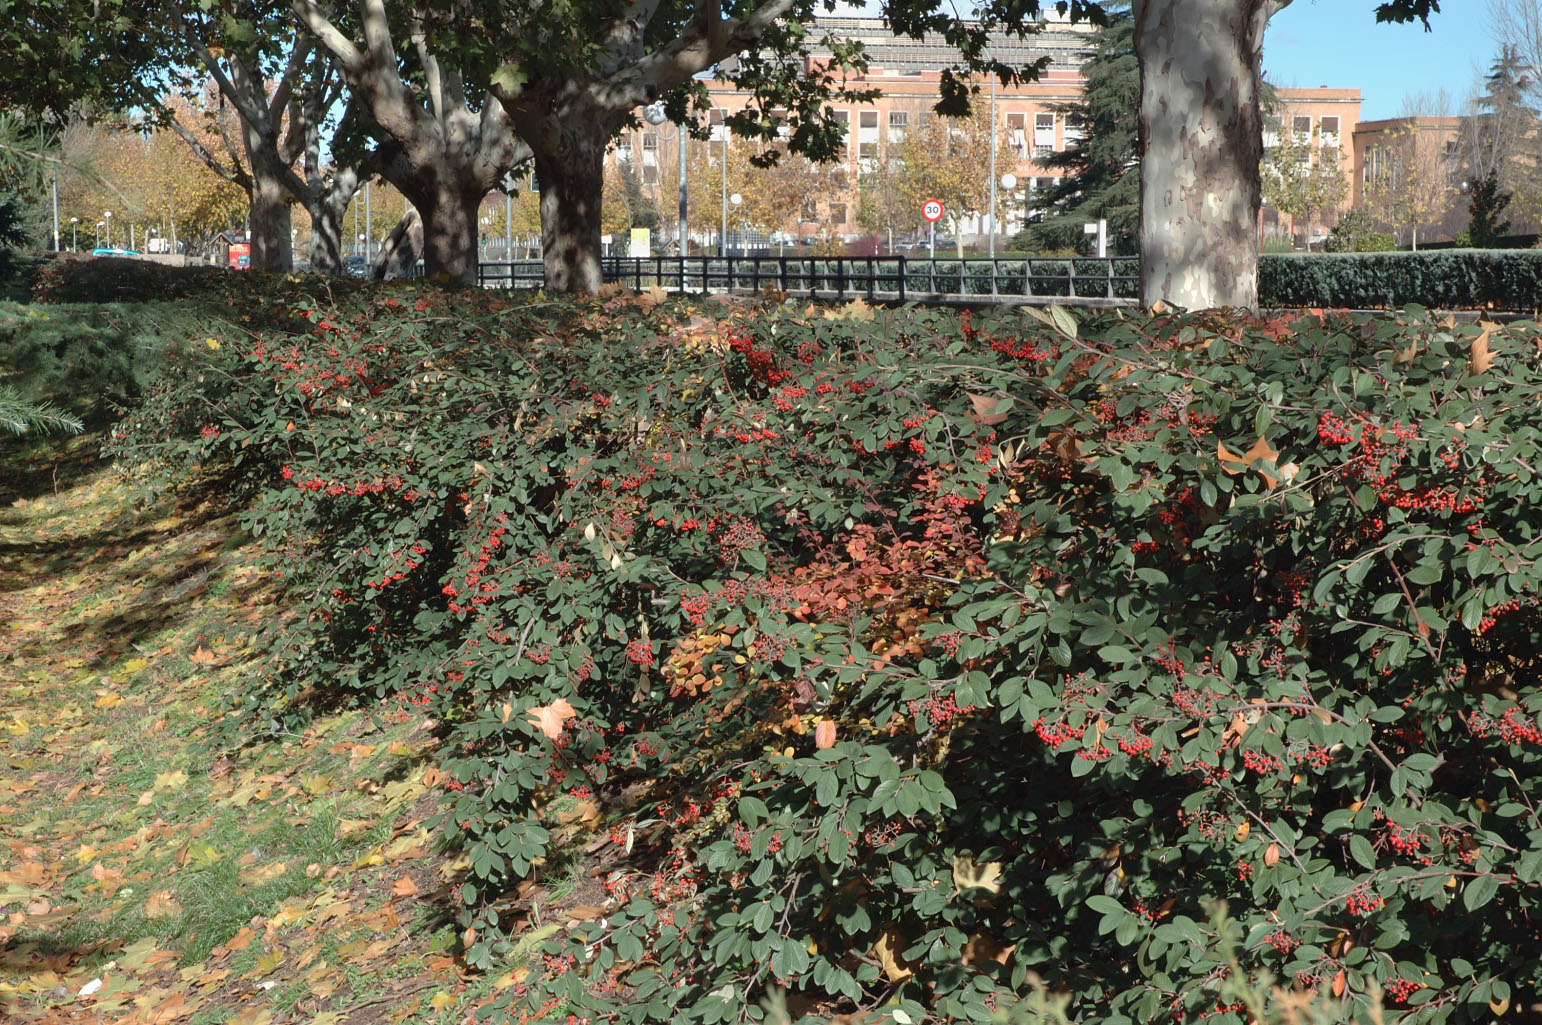 Appearance of a hedge in autumn